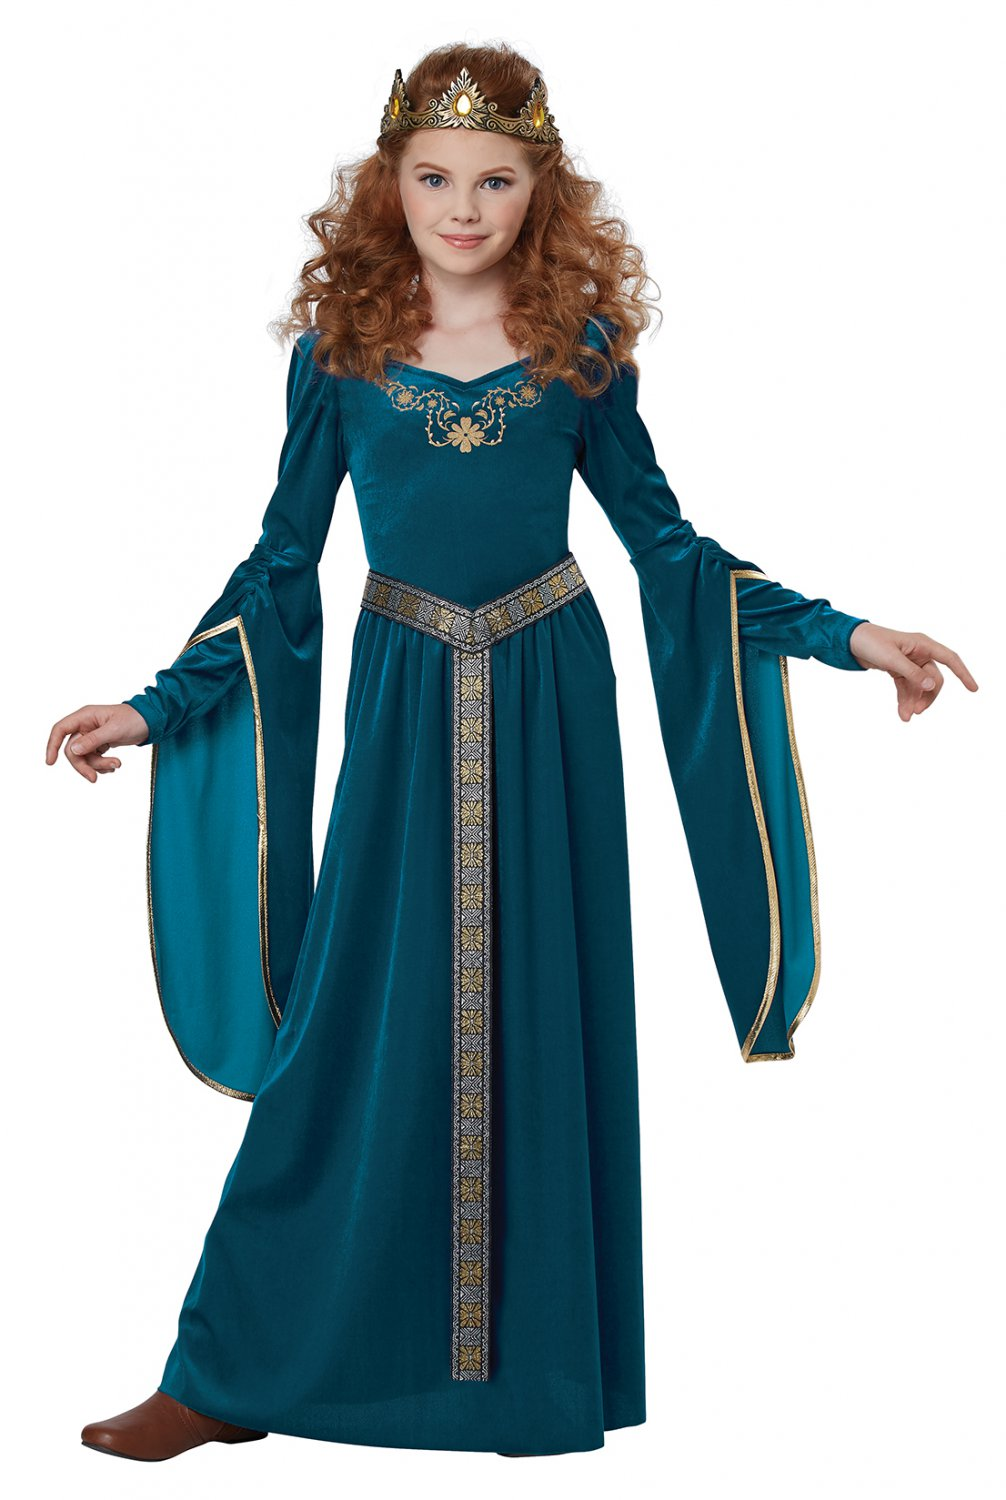 Size: X-Small #00573 Medieval Princess Renaissance Game of Thrones Girl Child Costume